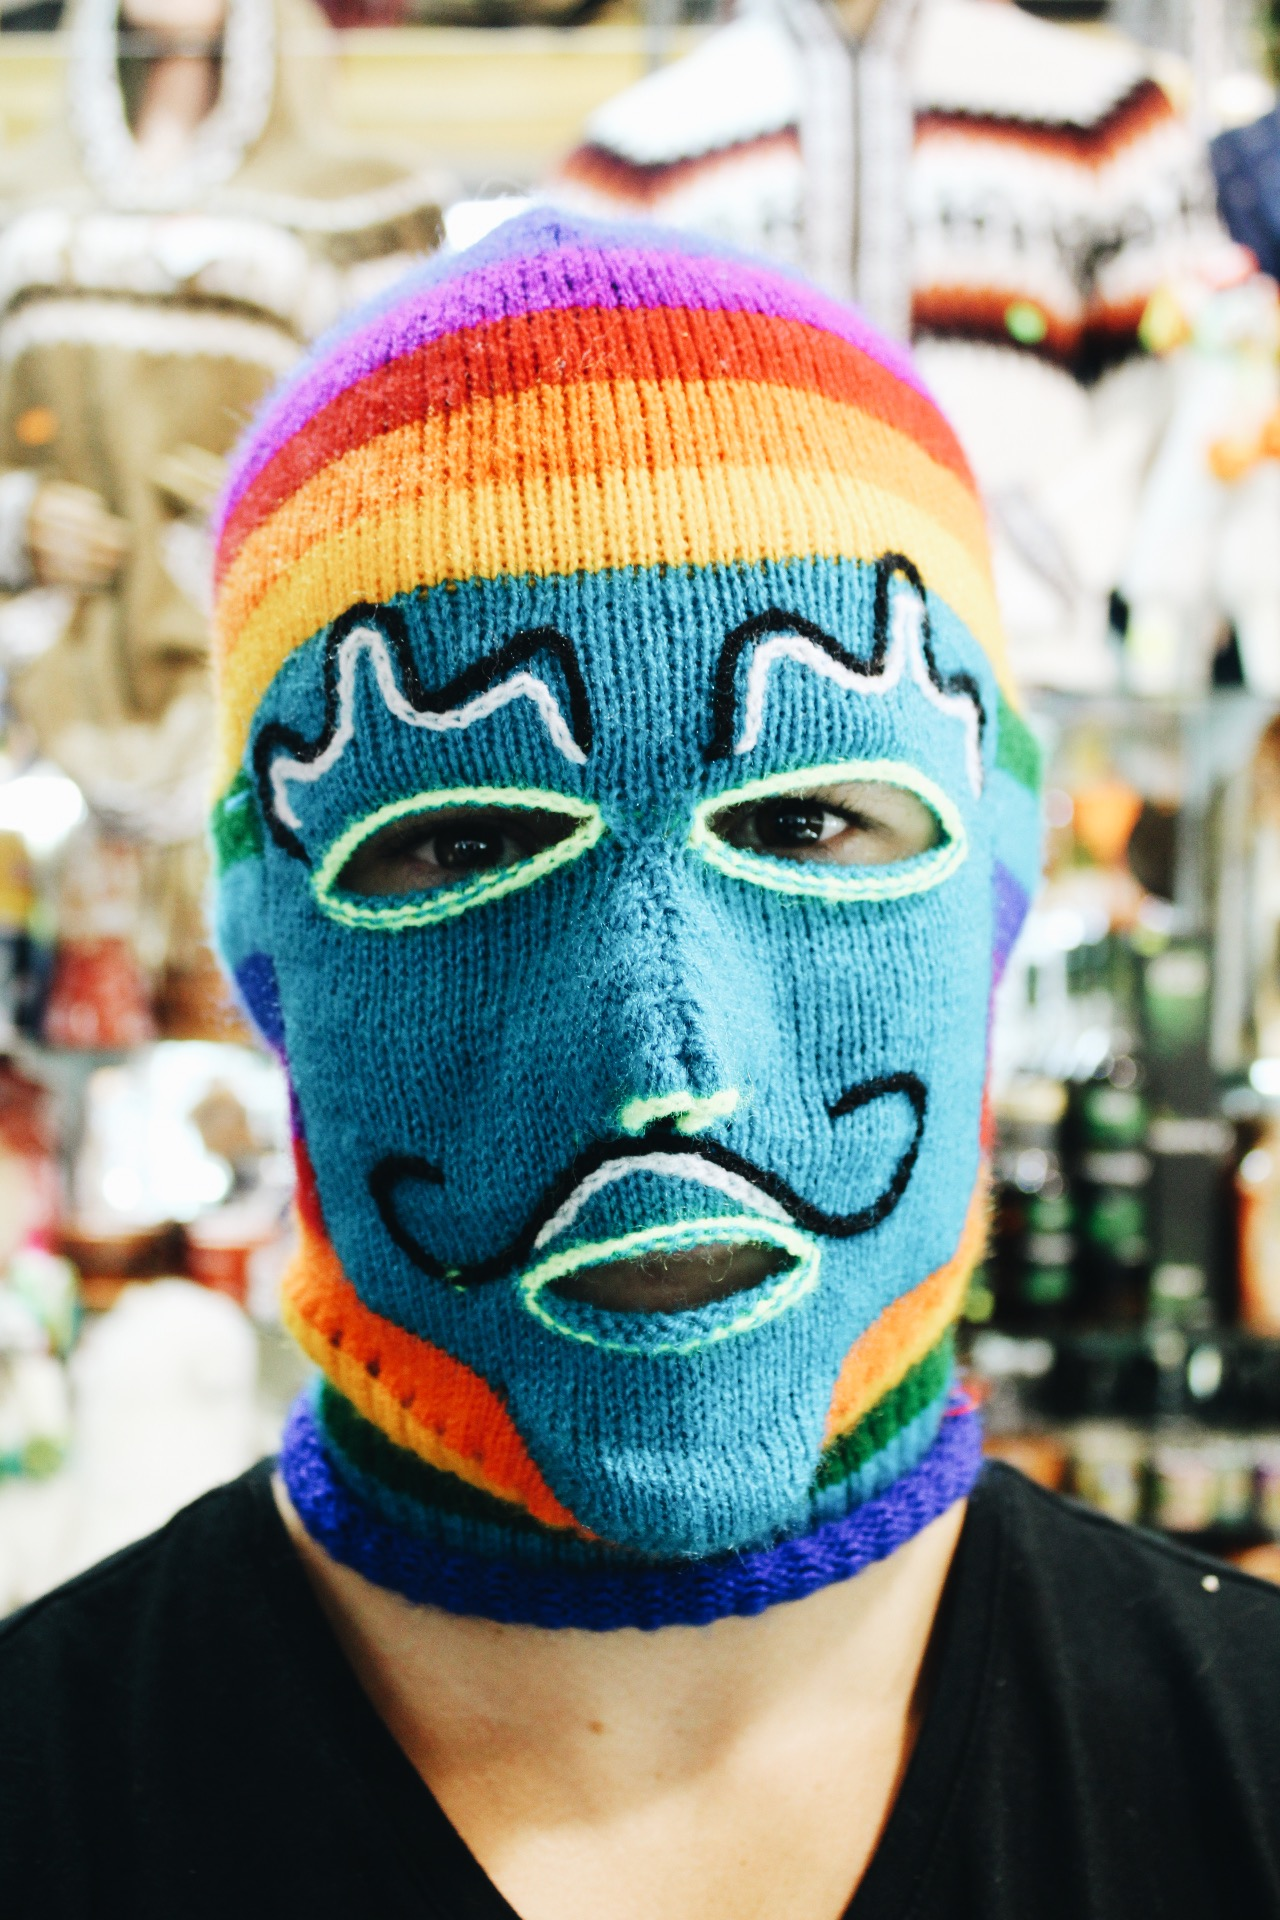 {wade is sporting one of the many brightly colored textiles in the markets - now his new ski mask!}